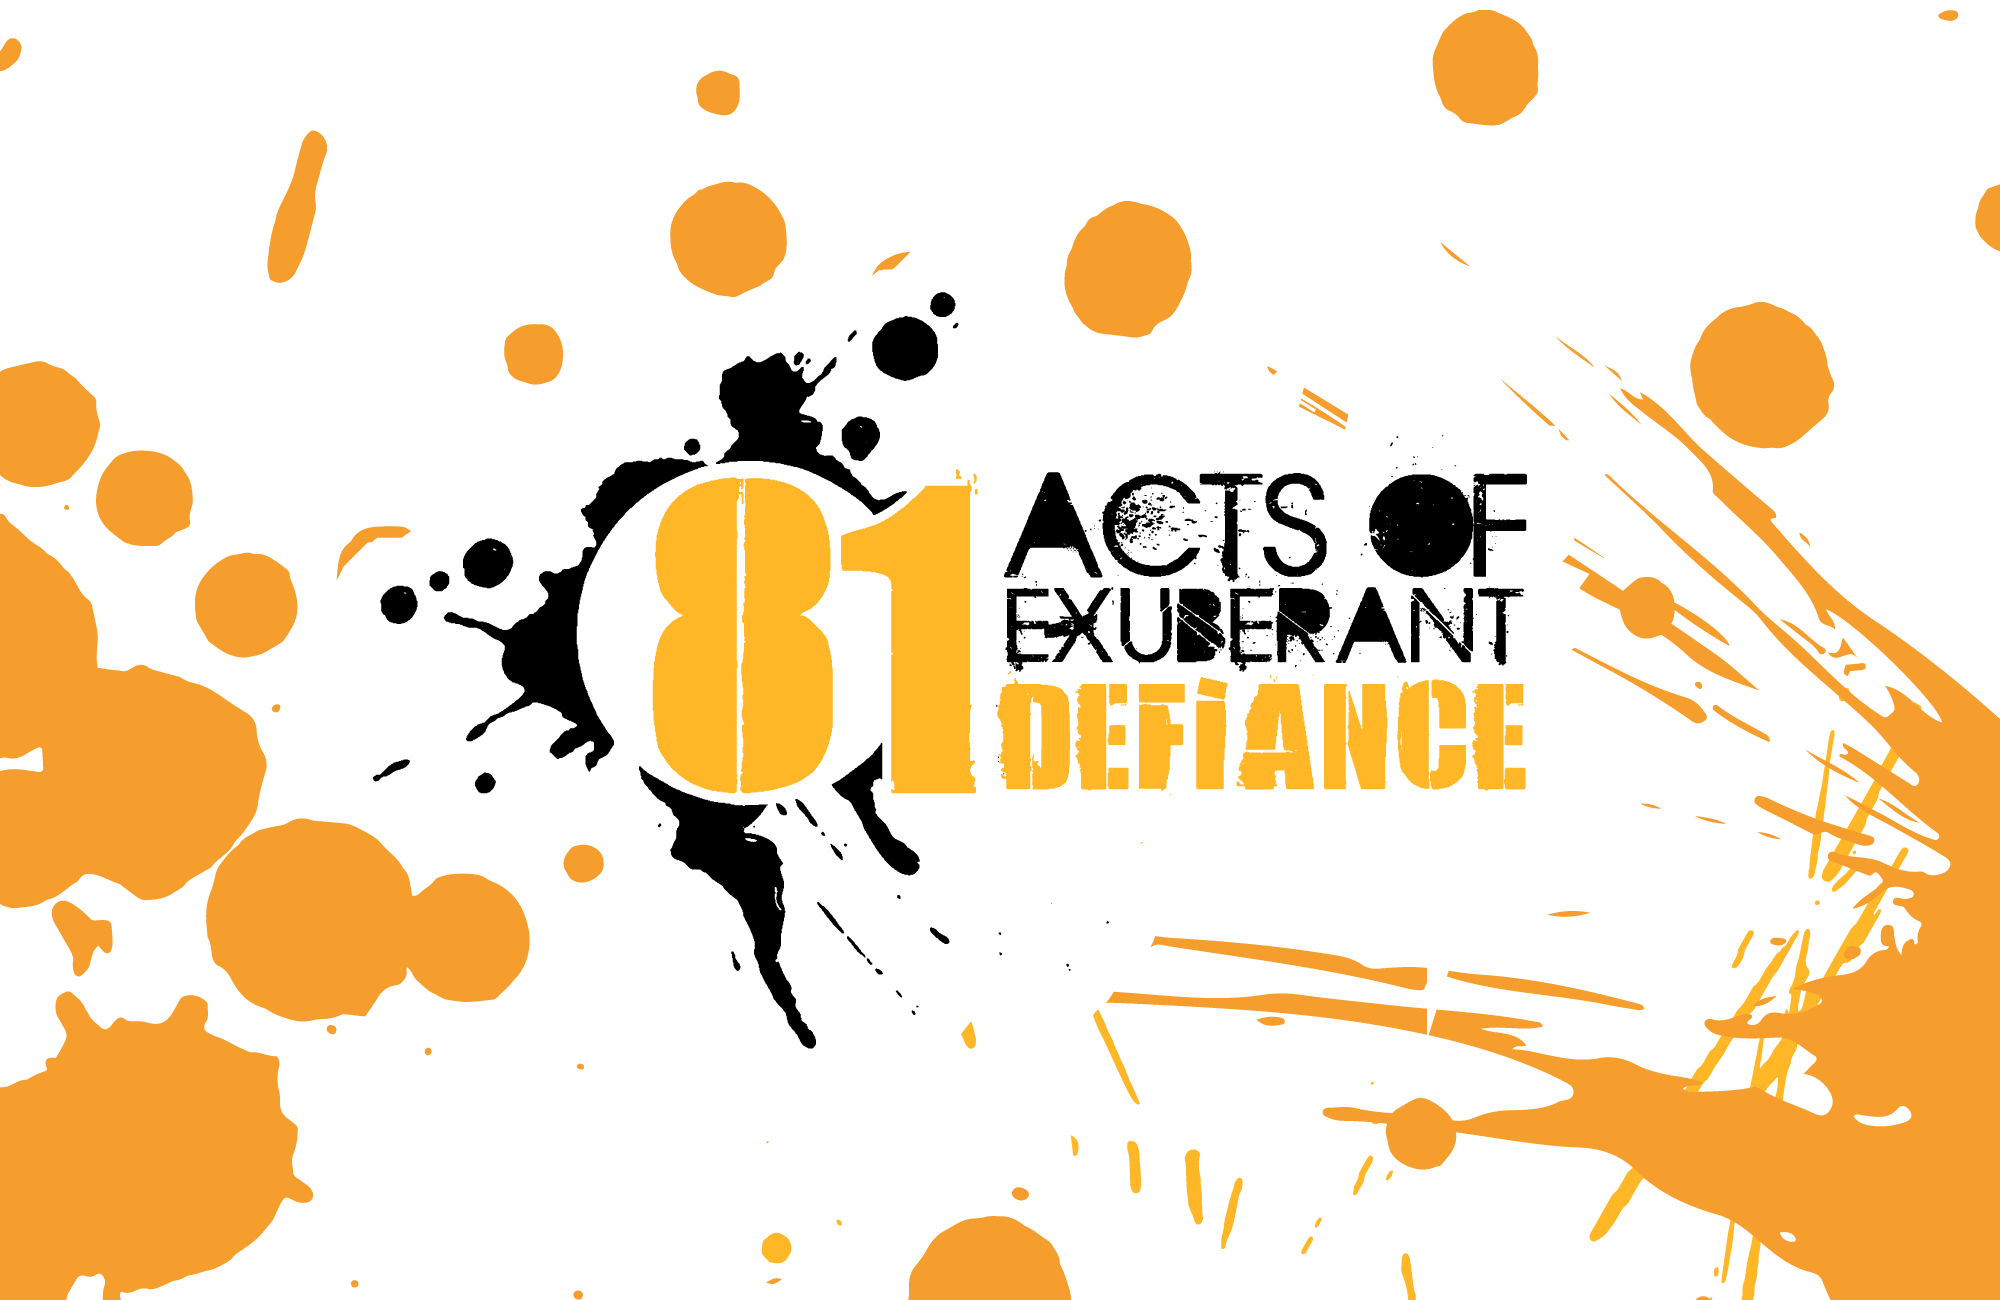 81 Acts of Exuberant Defiance event image